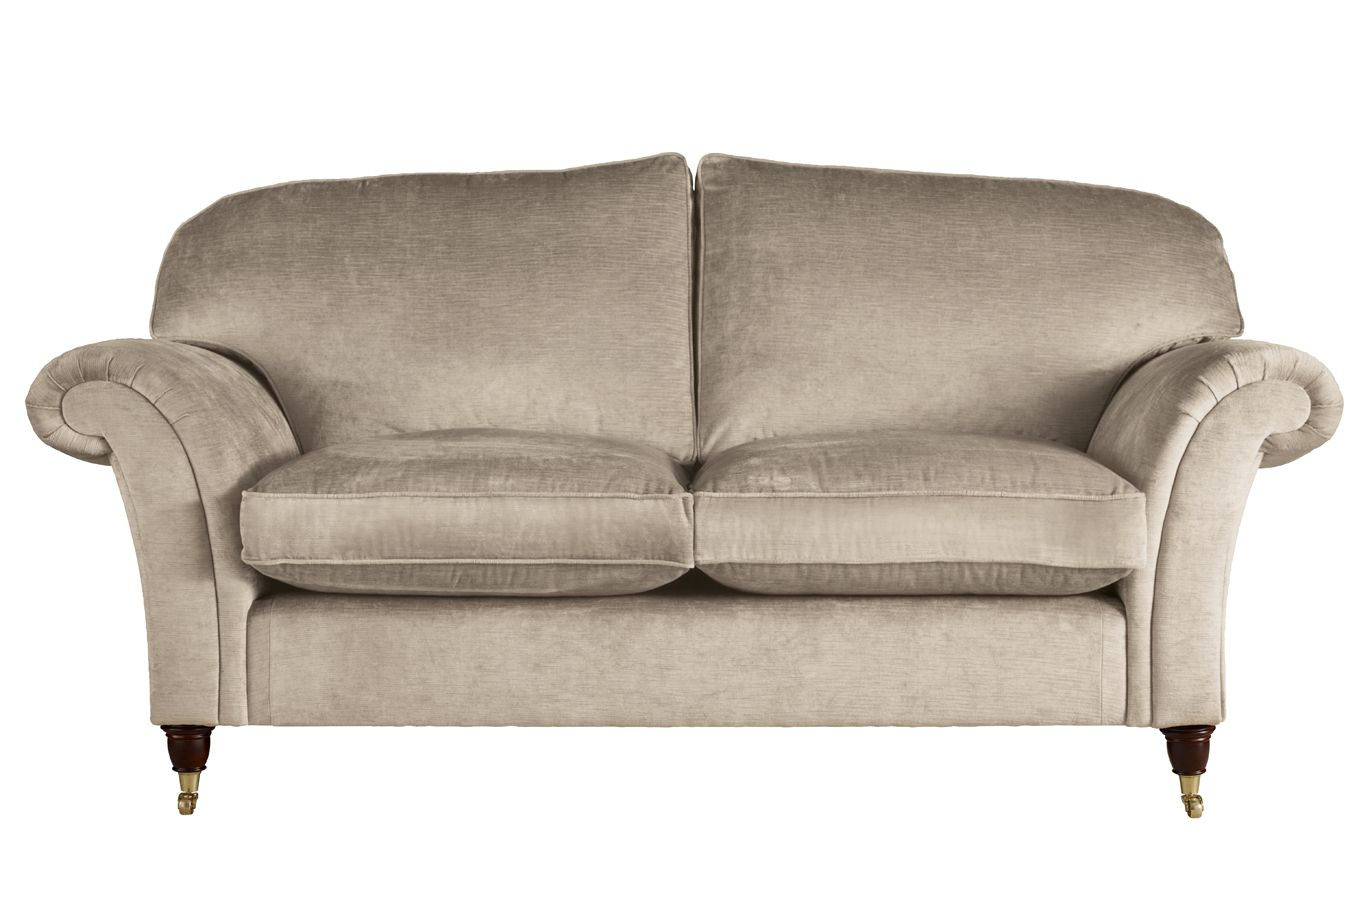 Mortimer Upholstered Small 2 Seater Sofa - Laura Ashley made ...